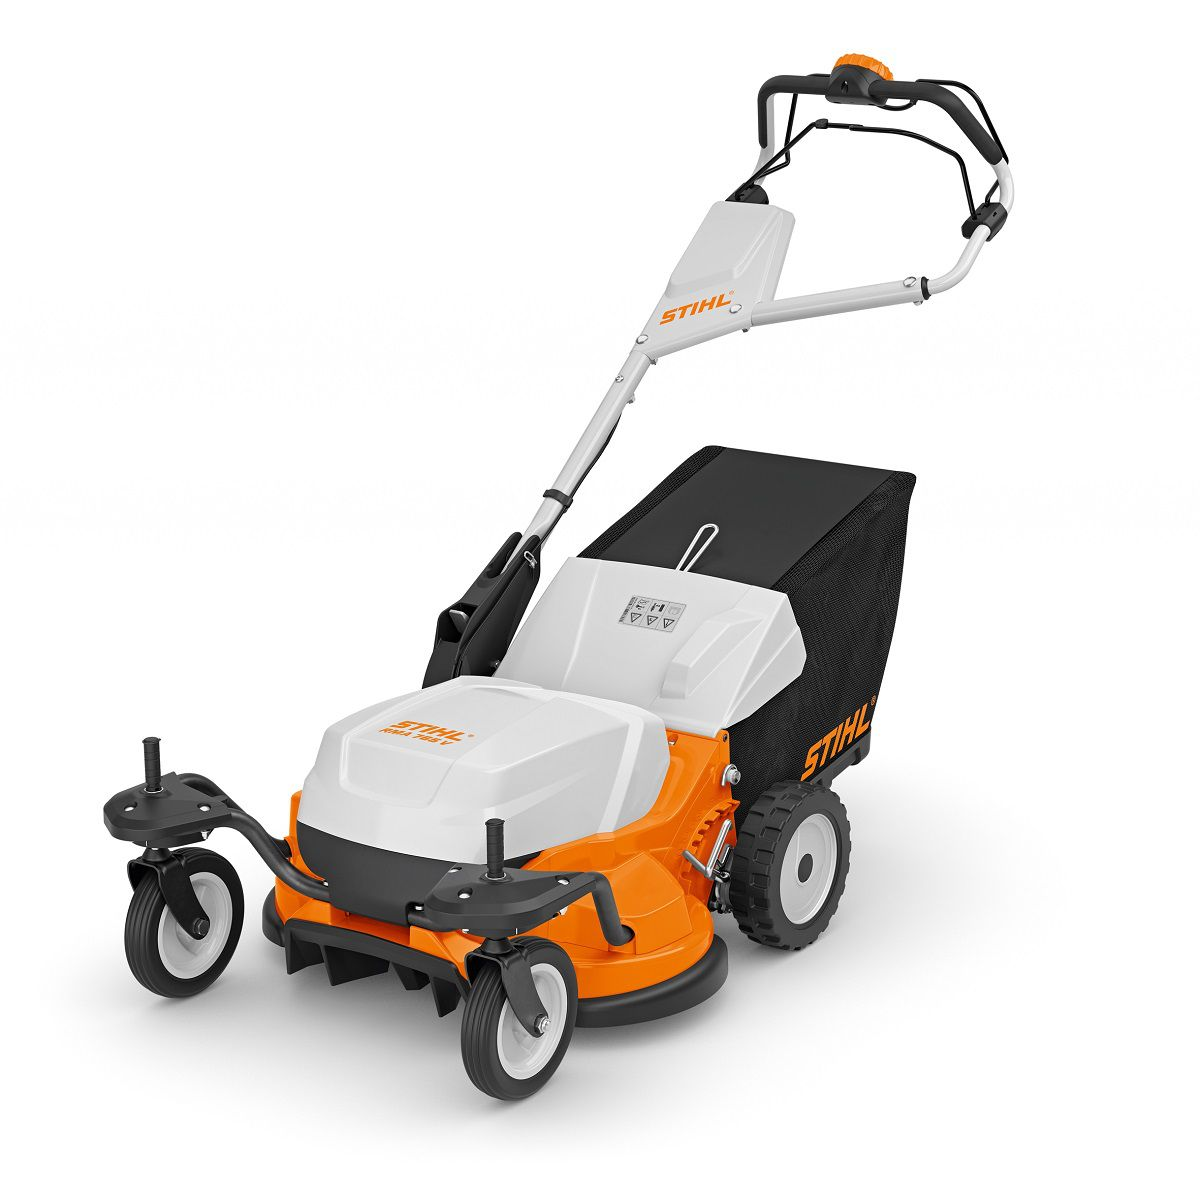 Stihl RMA 765 V Professional Battery Lawn Mower – No Battery Or Charger